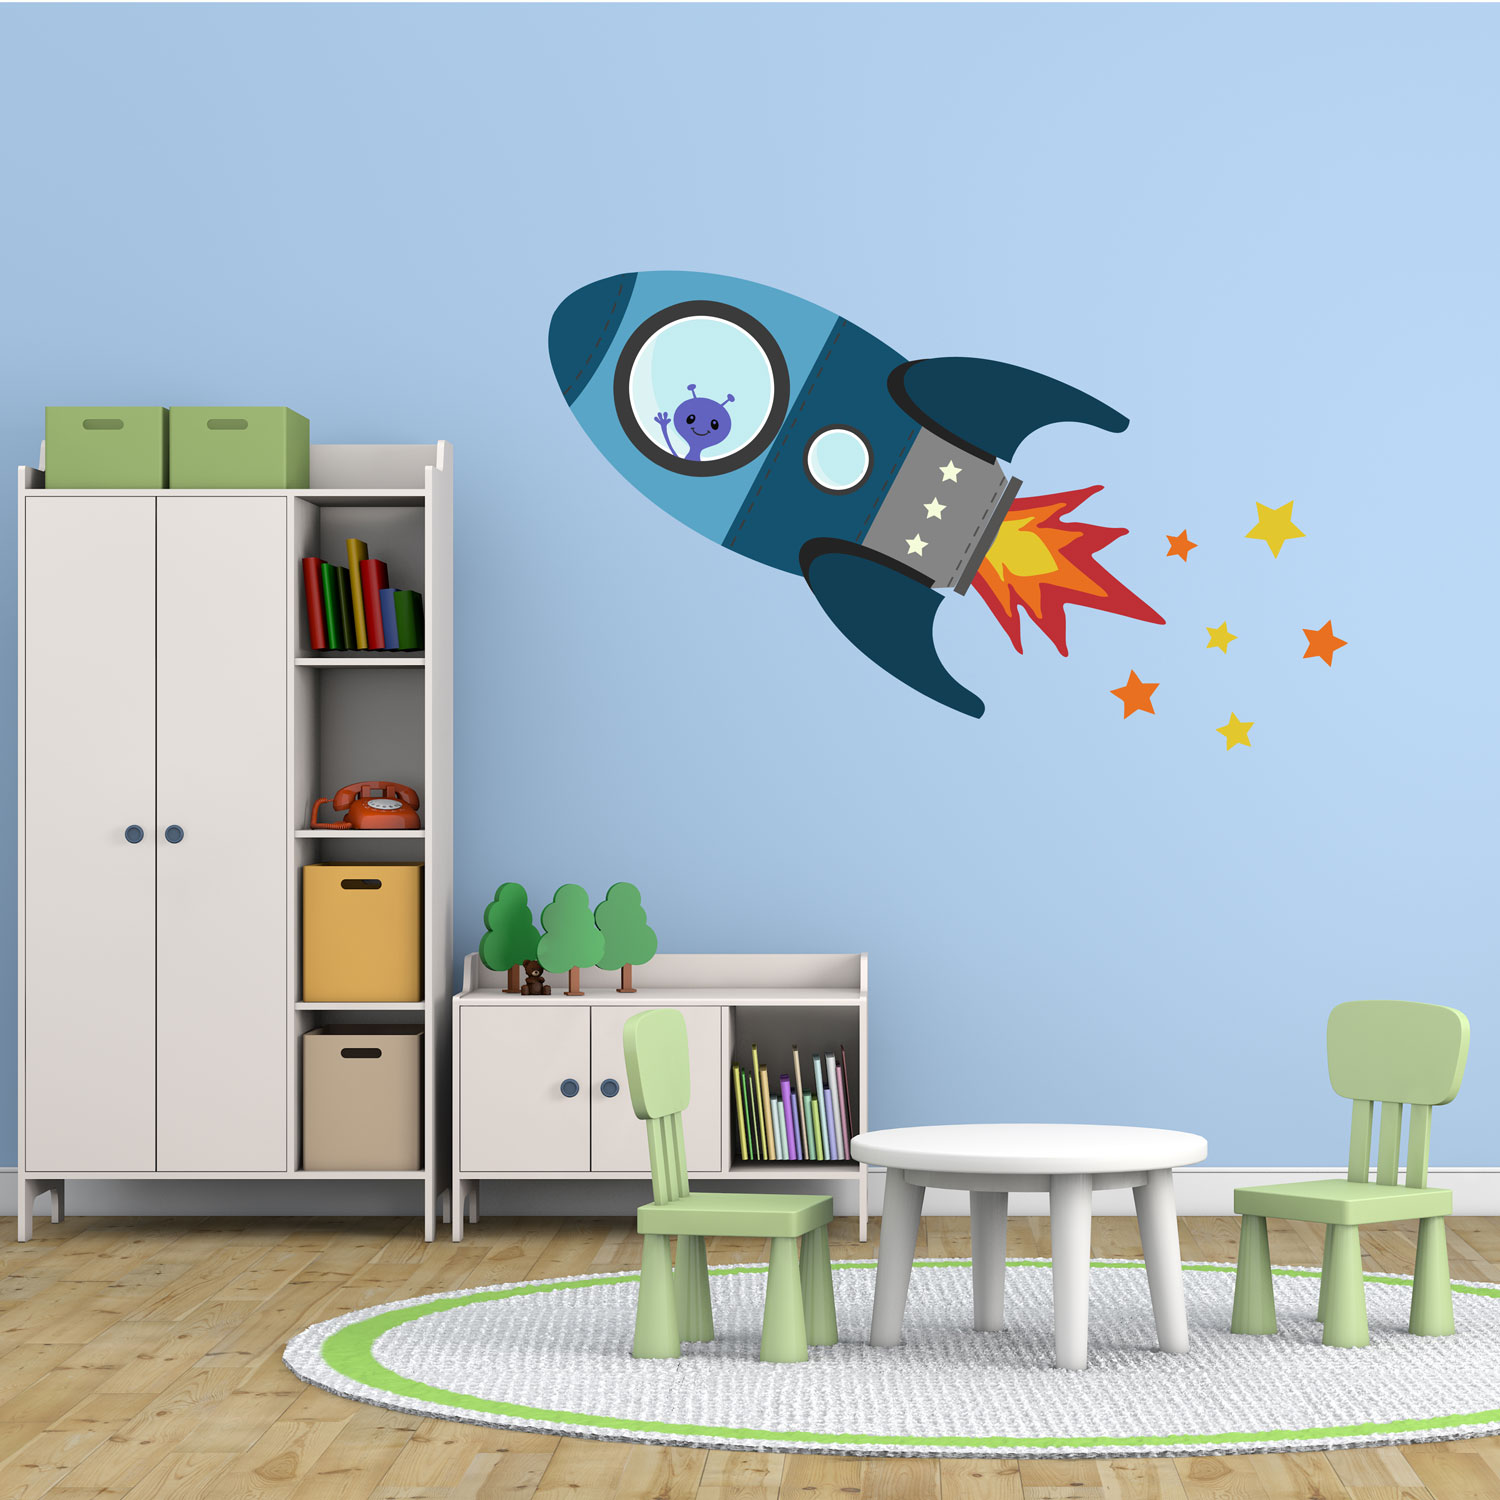 Space wall stickers | Stickerscape | UK